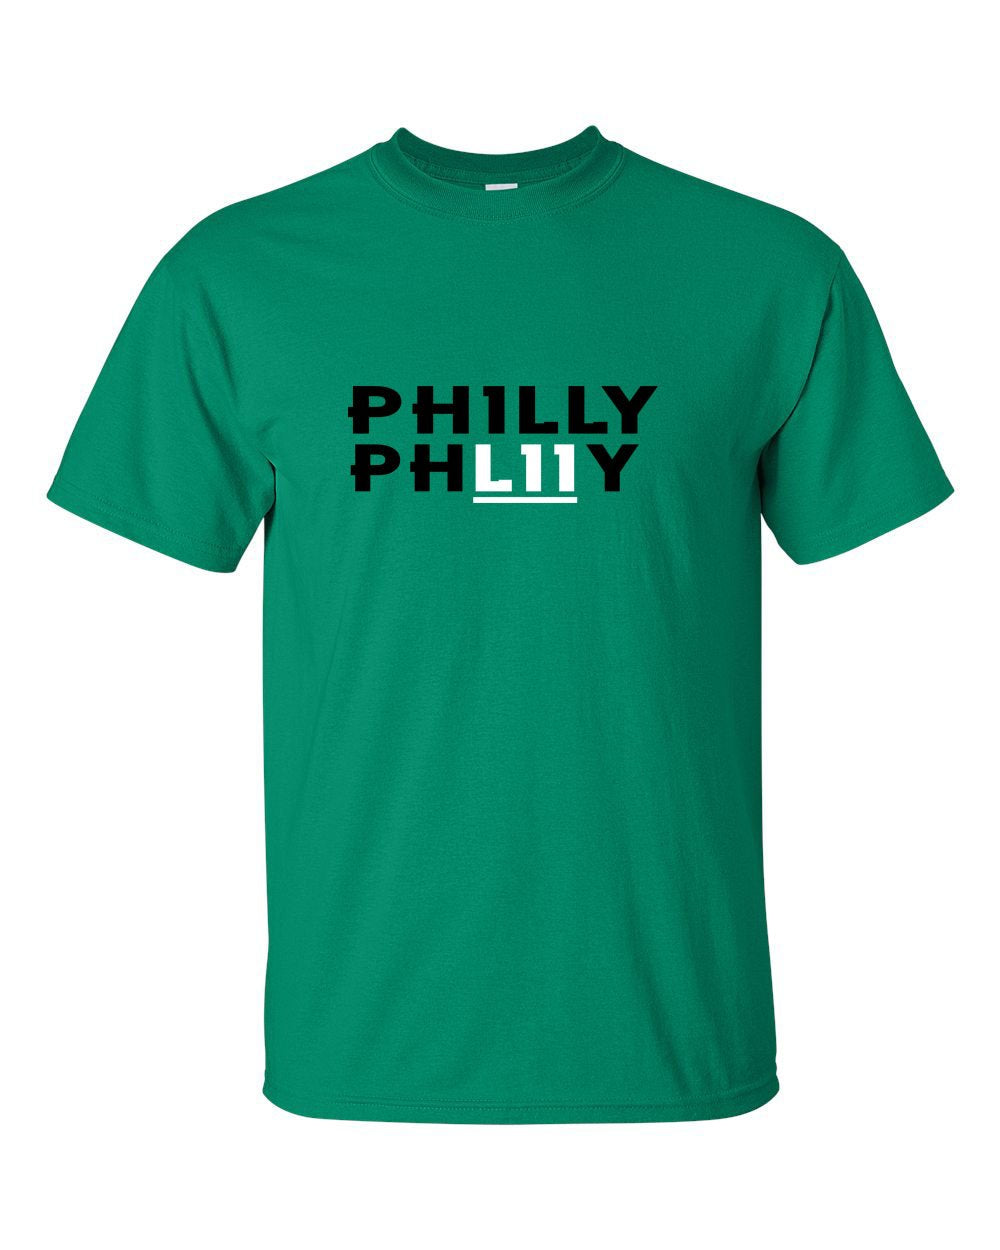 Philly Philly Mens/Unisex T-Shirt